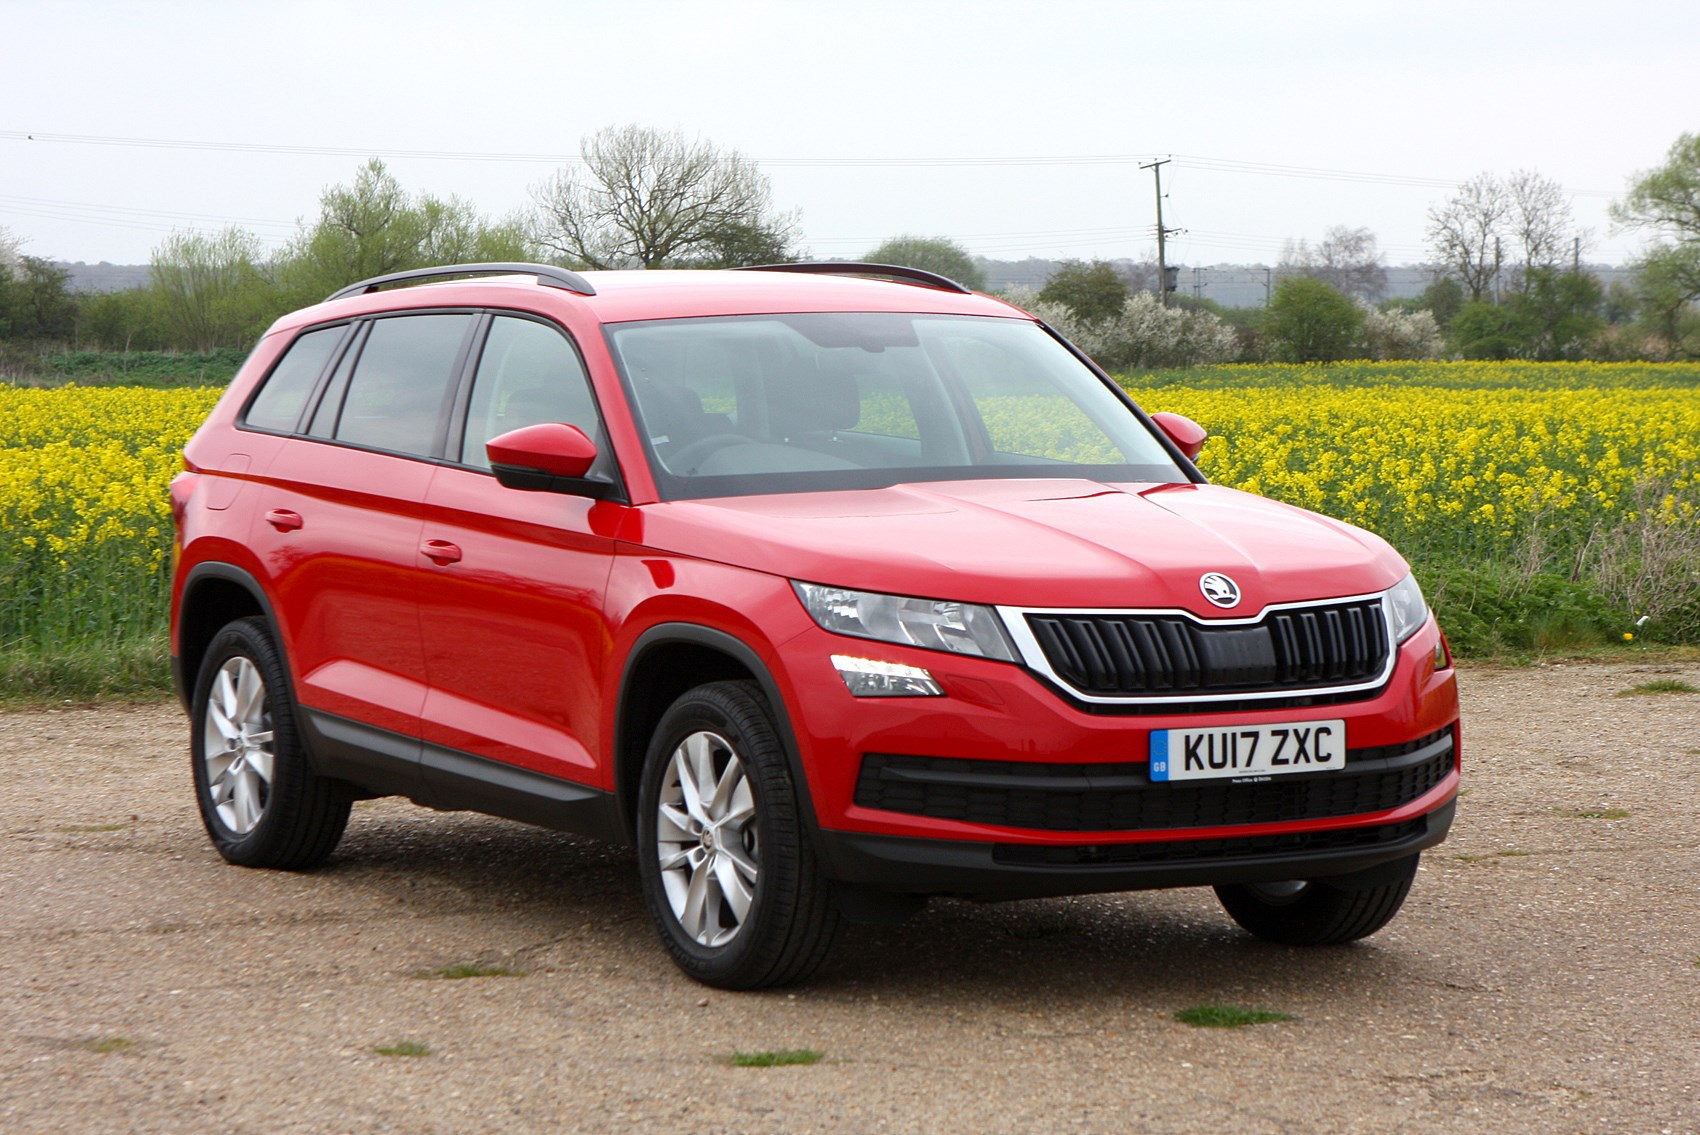 skoda kodiaq suv review 2017 parkers. Black Bedroom Furniture Sets. Home Design Ideas